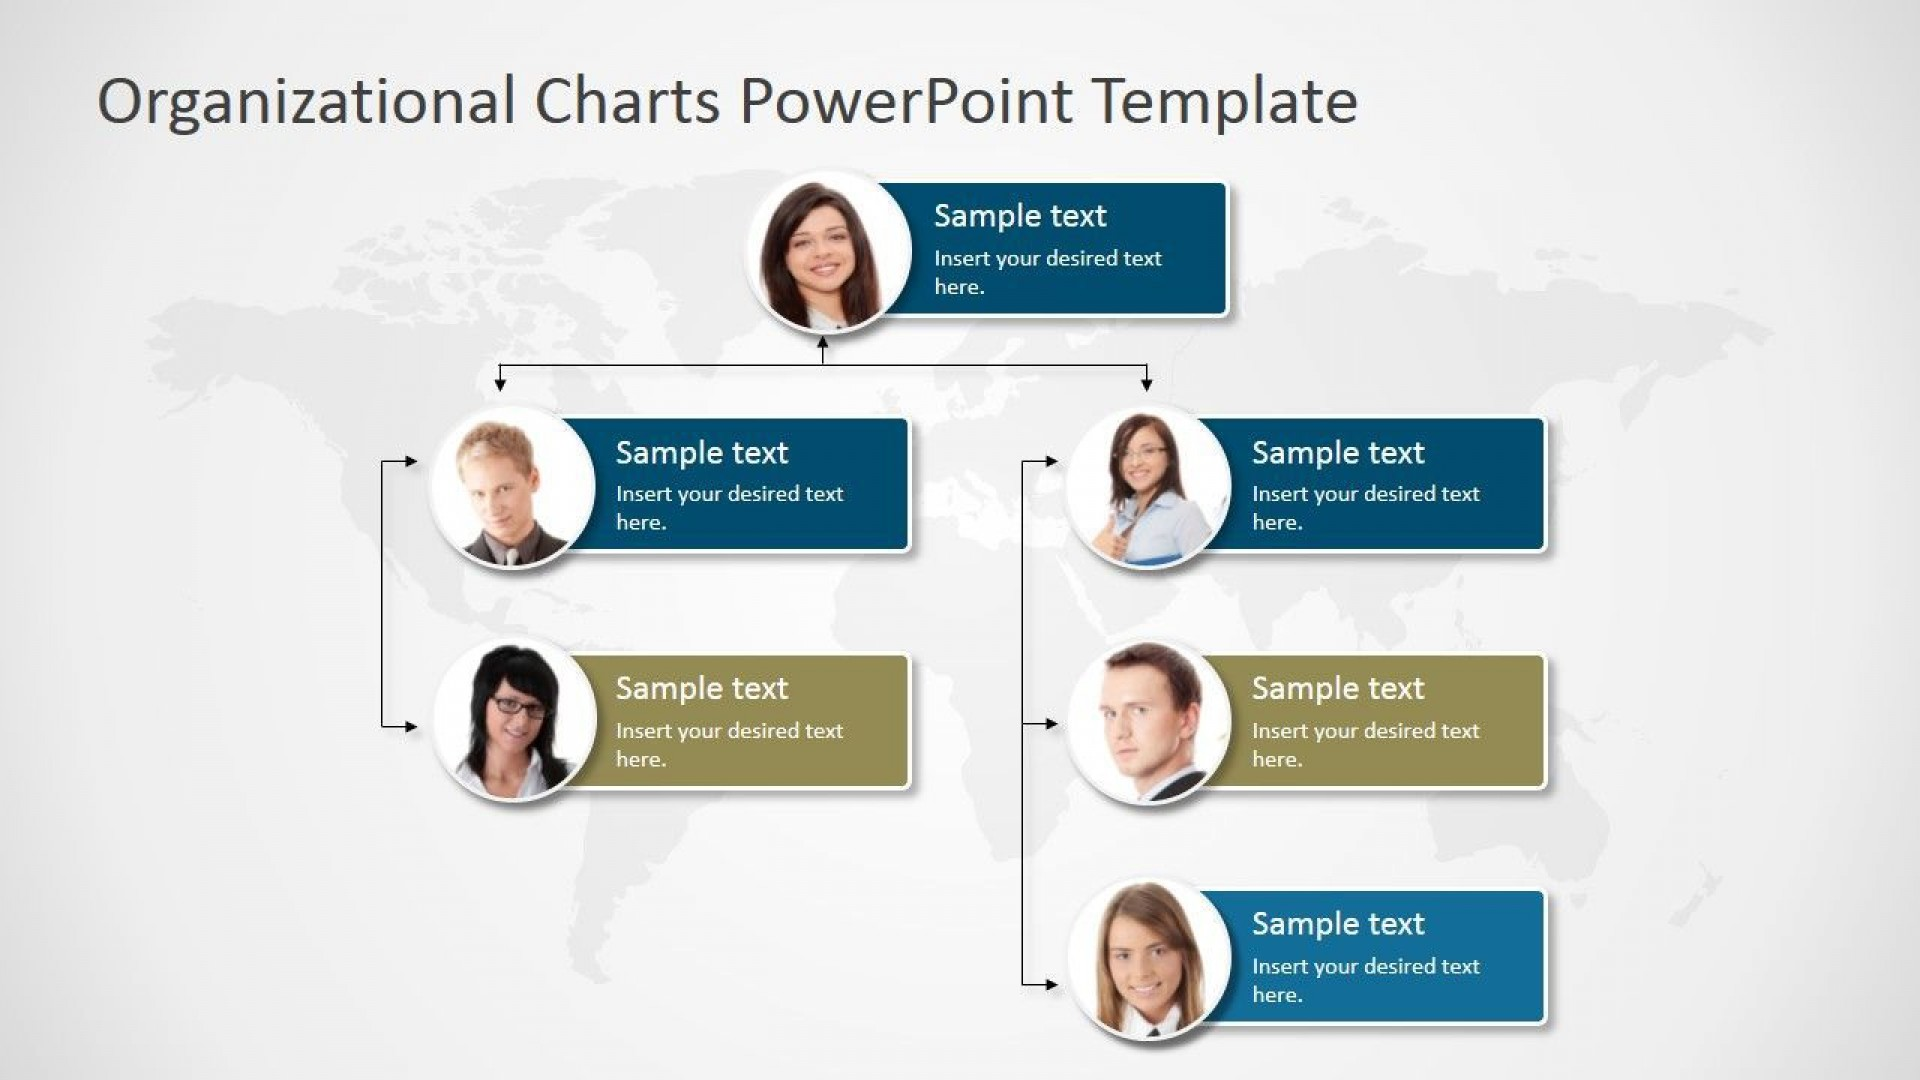 003 Awesome Organizational Chart Template Powerpoint Free Photo  Download 2010 Organization1920